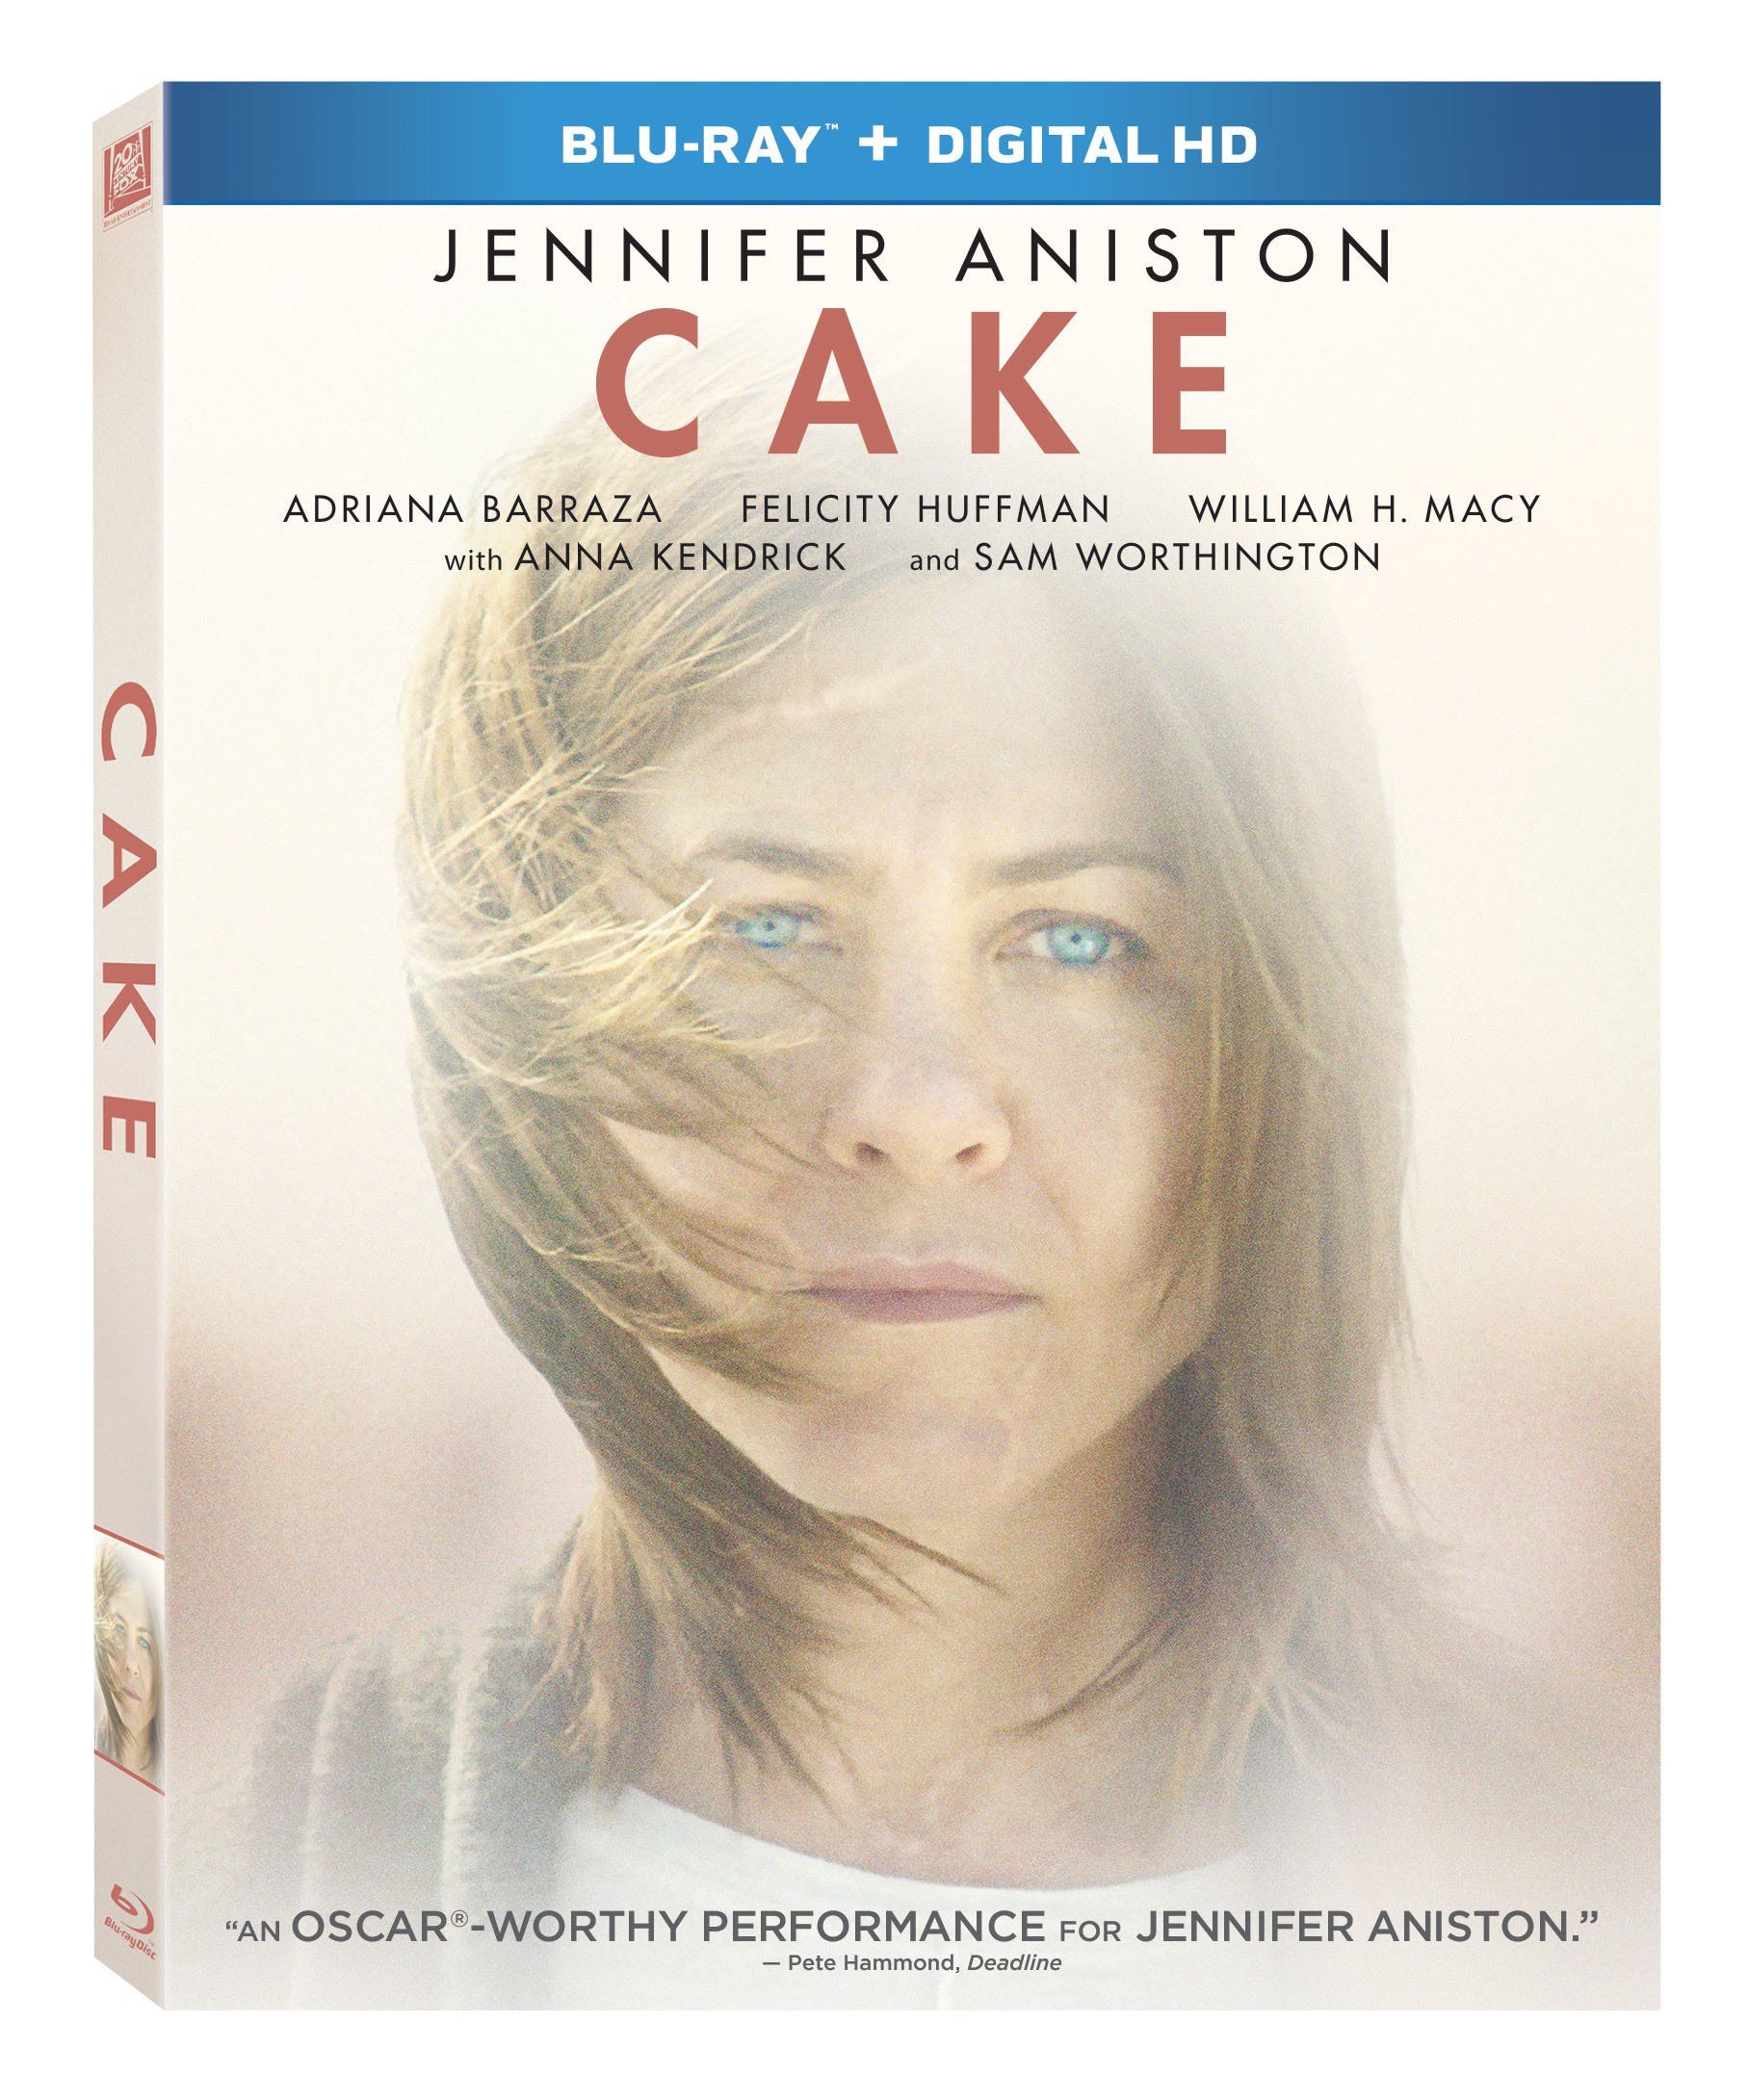 Blu-ray : Cake (Widescreen, Digital Theater System, Digitally Mastered in HD, )